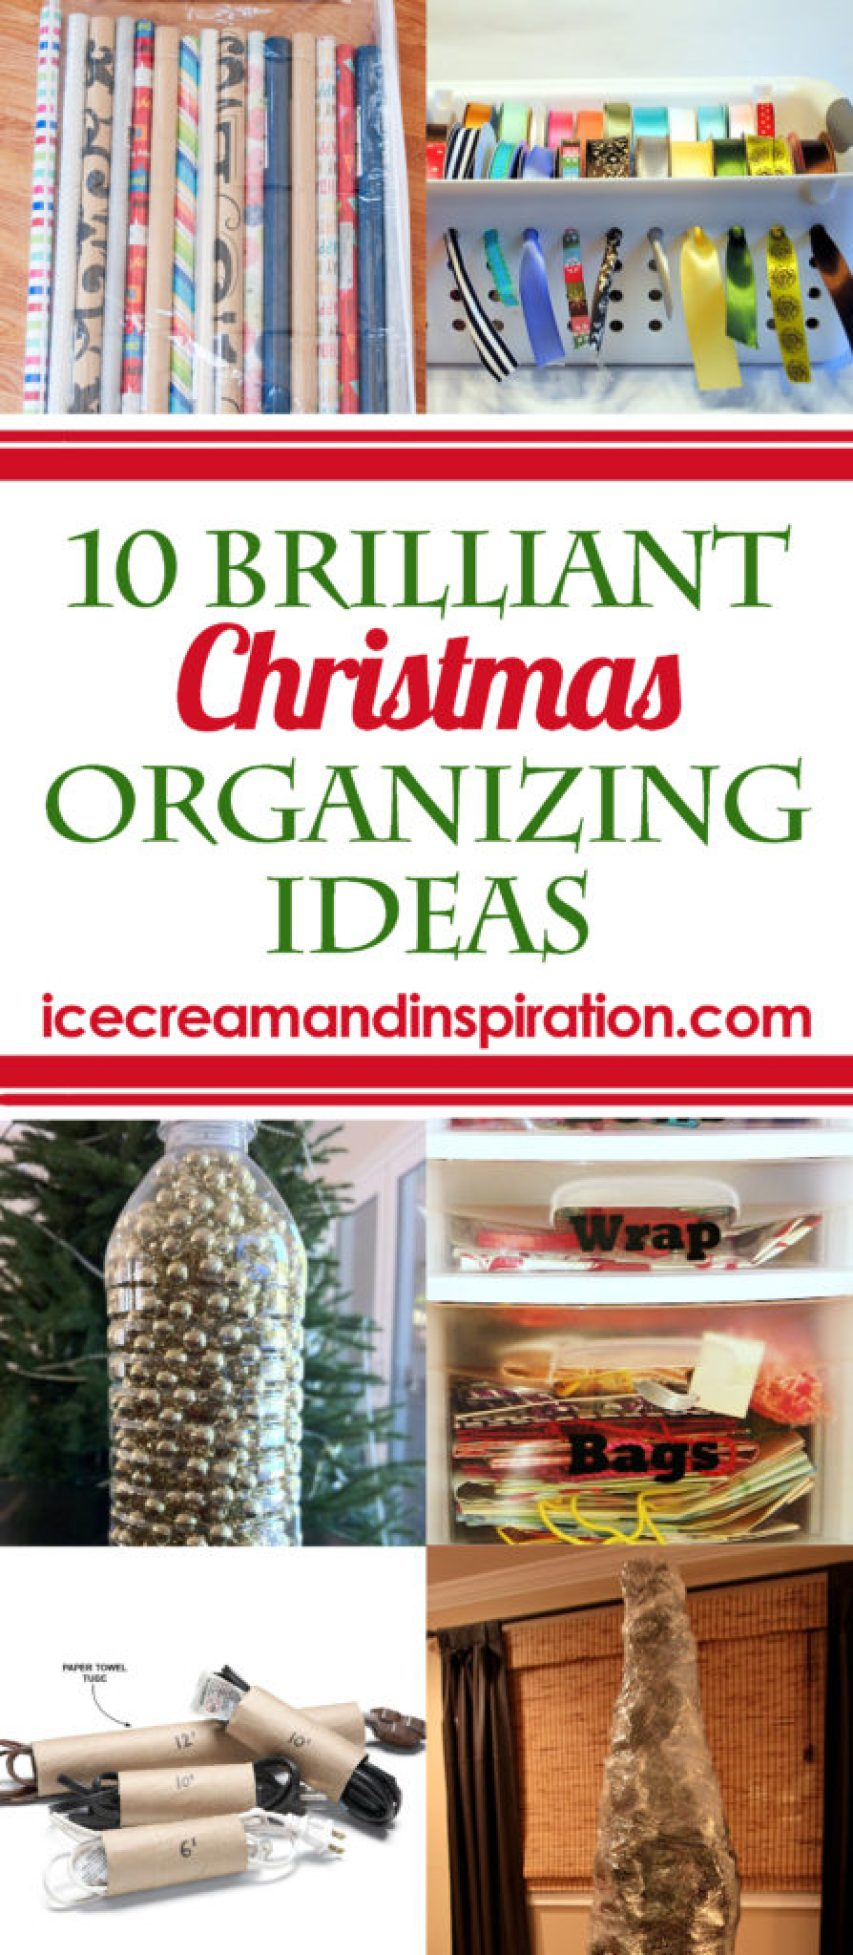 Use these 10 Brilliant Christmas Organizing Ideas as you clean up this year to make next year's decorating and wrapping a snap!